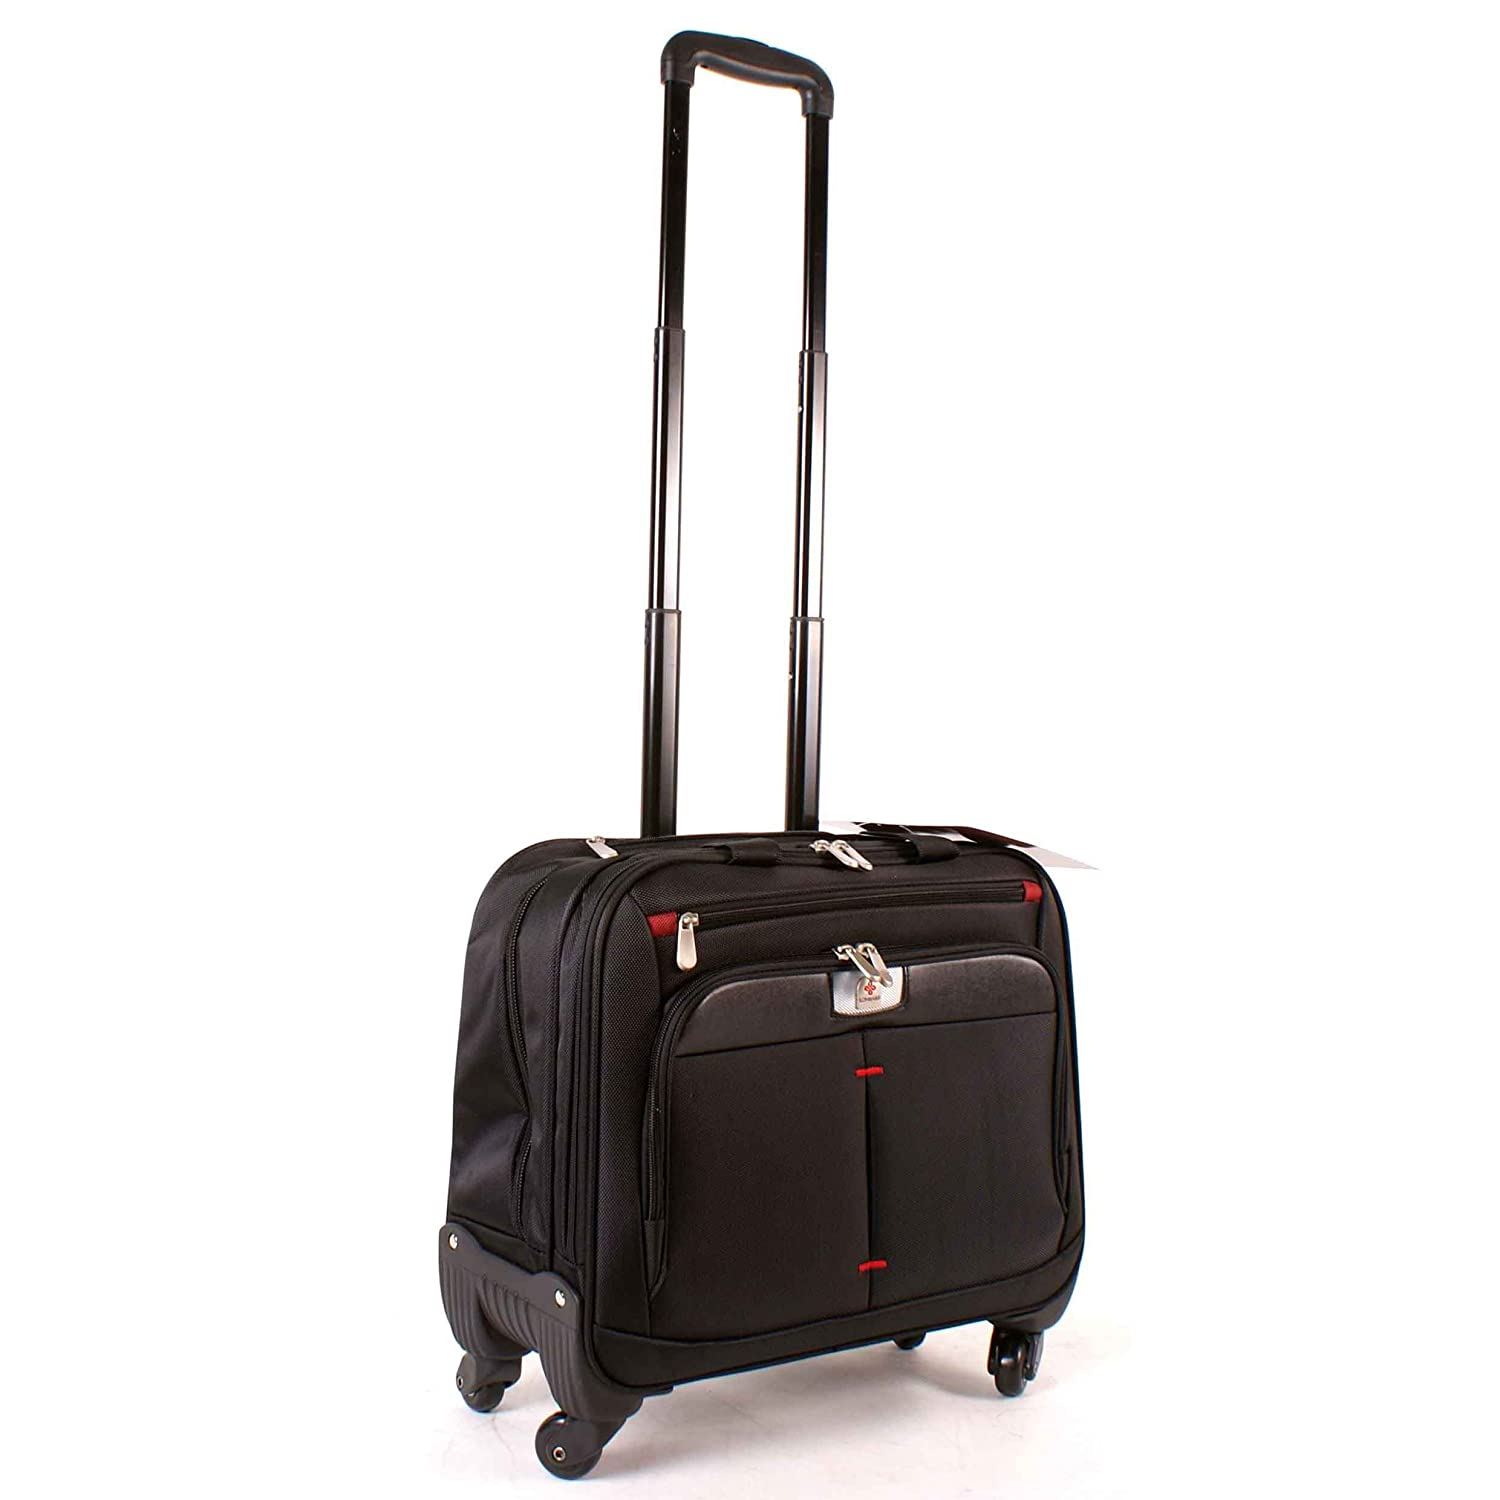 070 Black Lombard Black Laptop Trolley 17 Inches